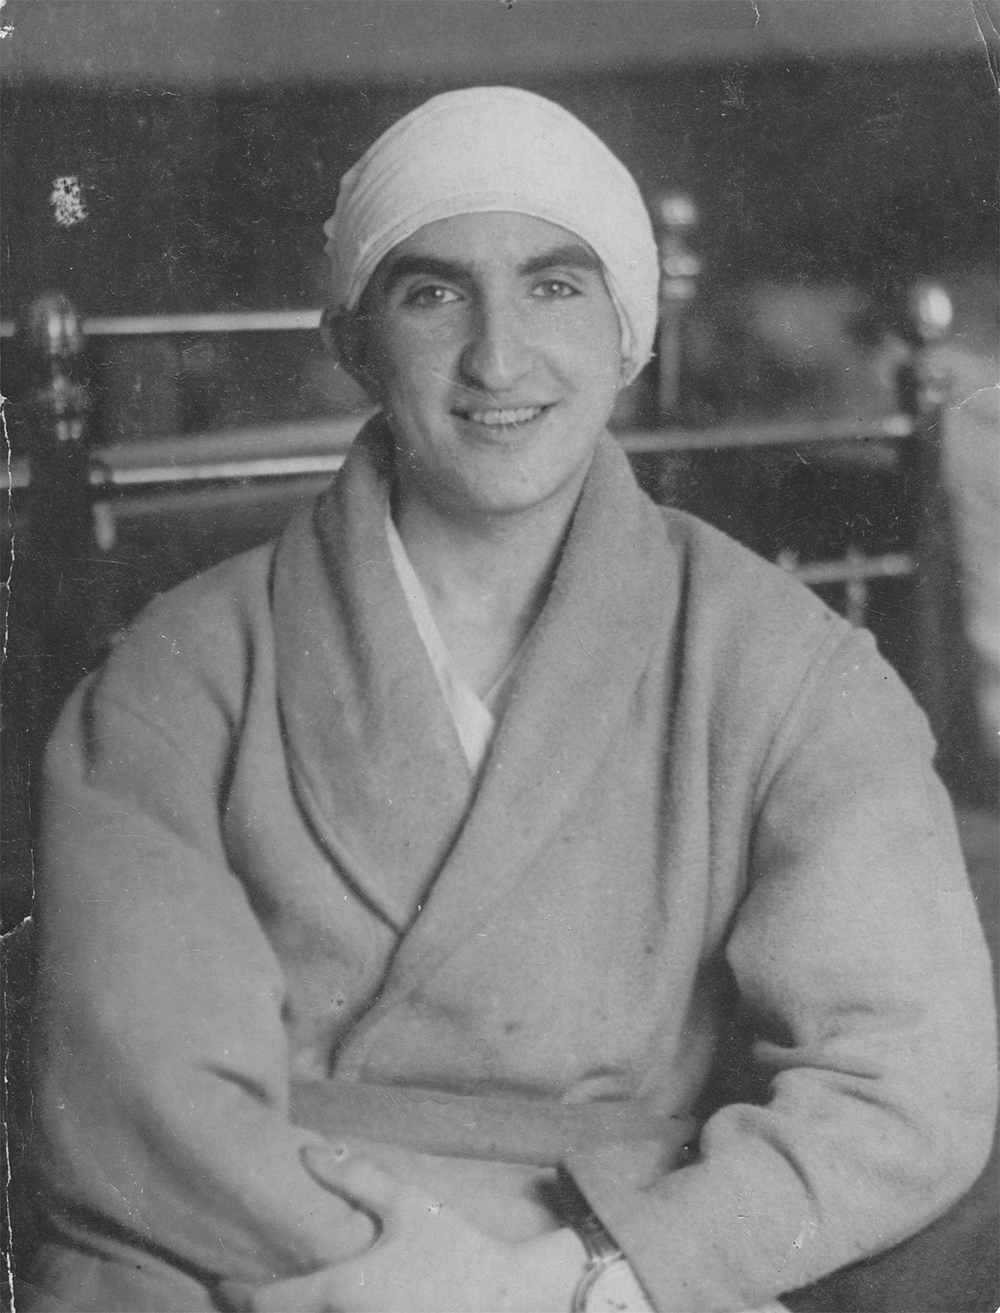 Mark Espthein in the hospital after a serious head injury, with bandage around his head, and wearing a hospital robe. 1943. In total, Mark Epshtein was wounded five times during the war.